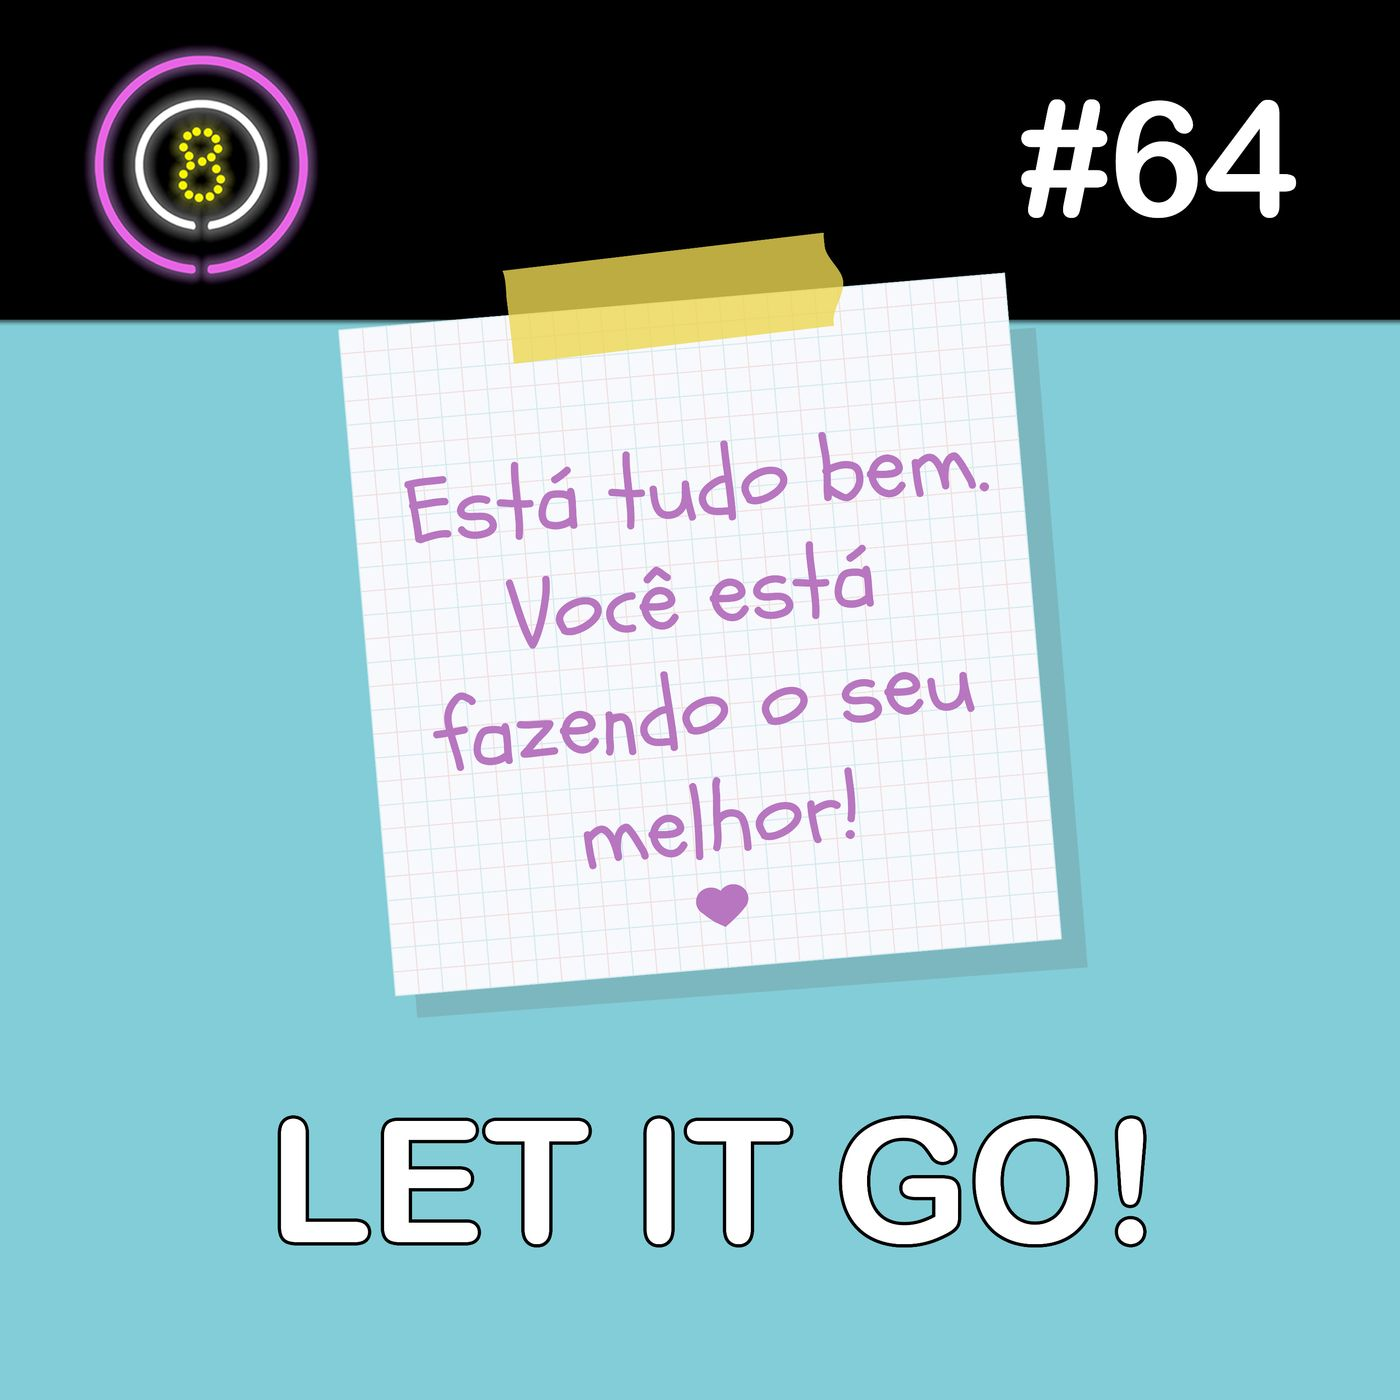 #64 - Let it go!